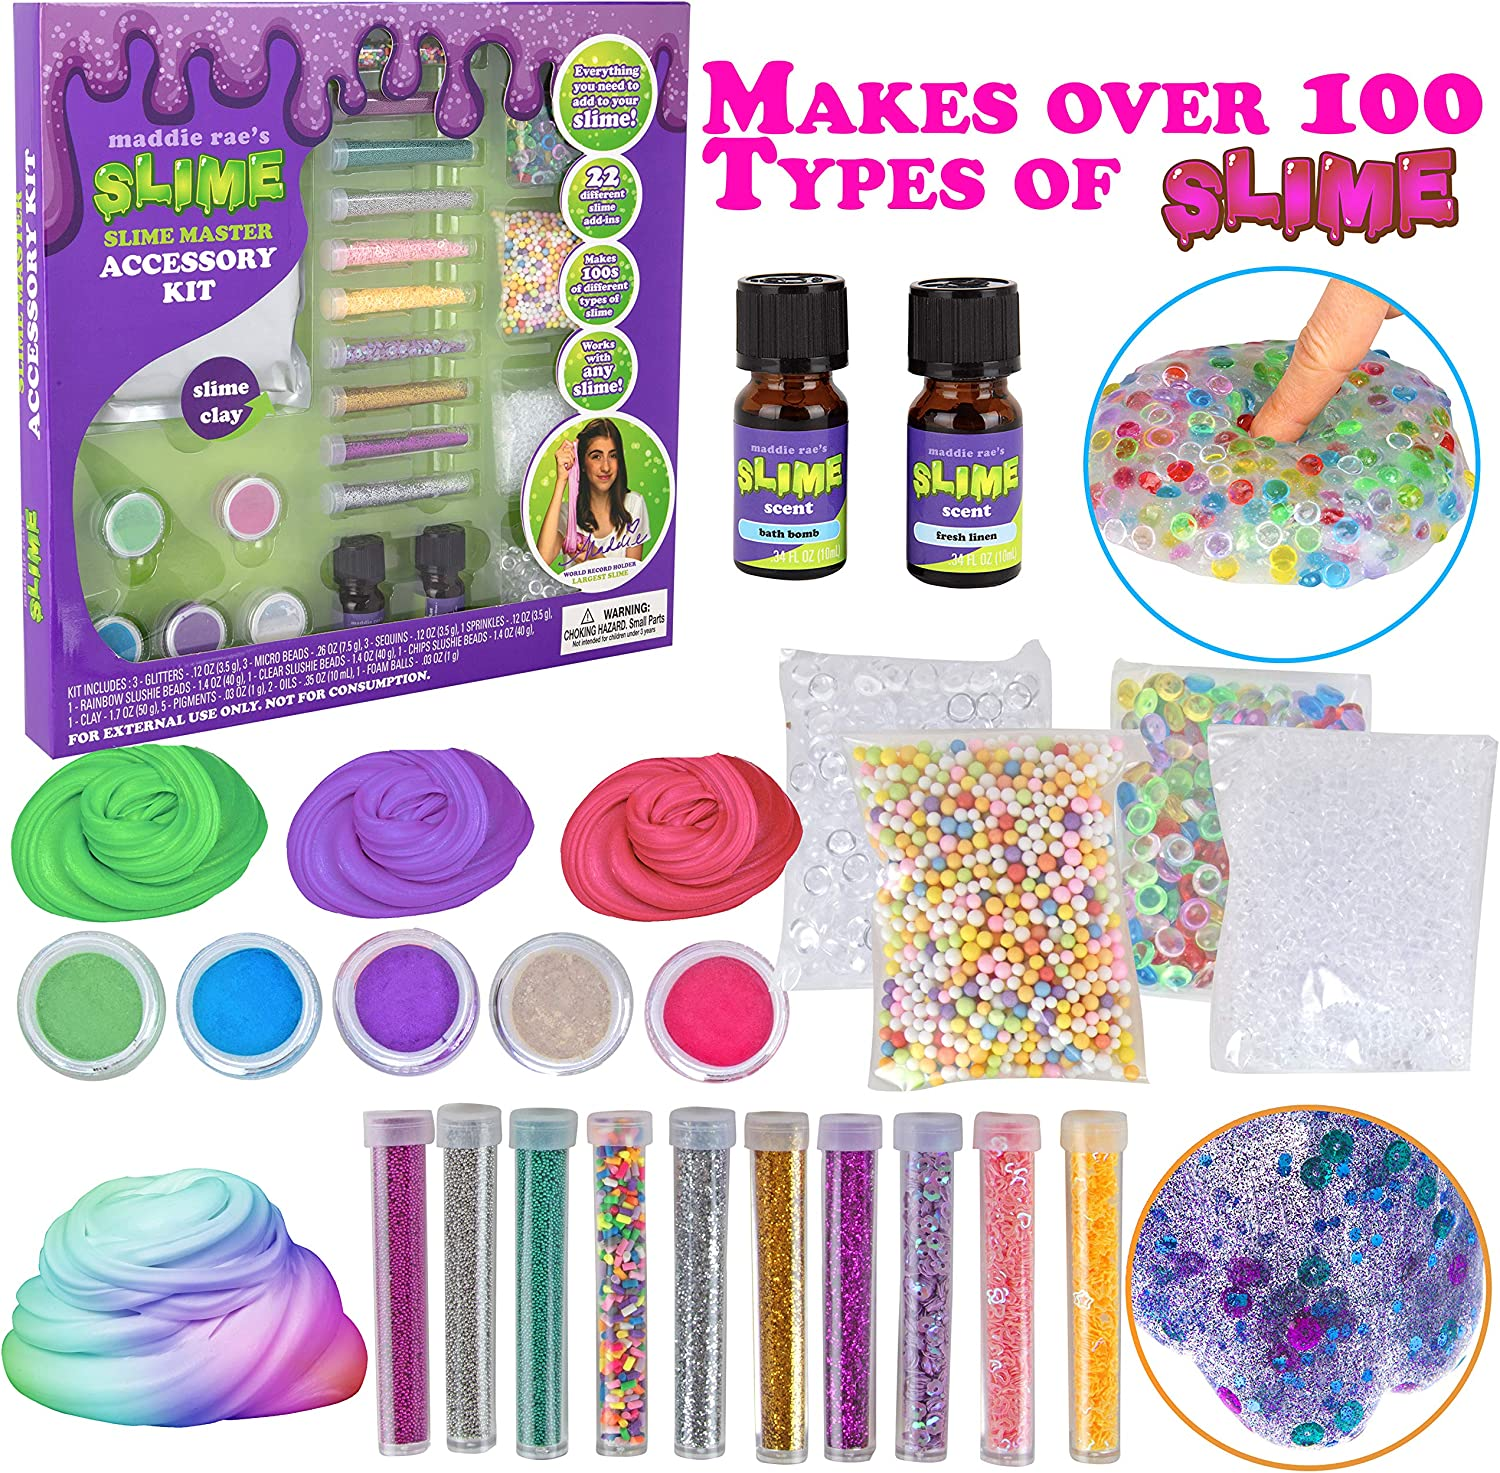 Maddie Rae's Slime Making Master Kit (22 Piece Set)-DIY Supplies Set for Girls Makes 100+ Types of Slime-Create Cloud, Butter, Clear, Slime w/ Microbeads, Glitter, Clay & More, Fun Arts & Crafts Gift